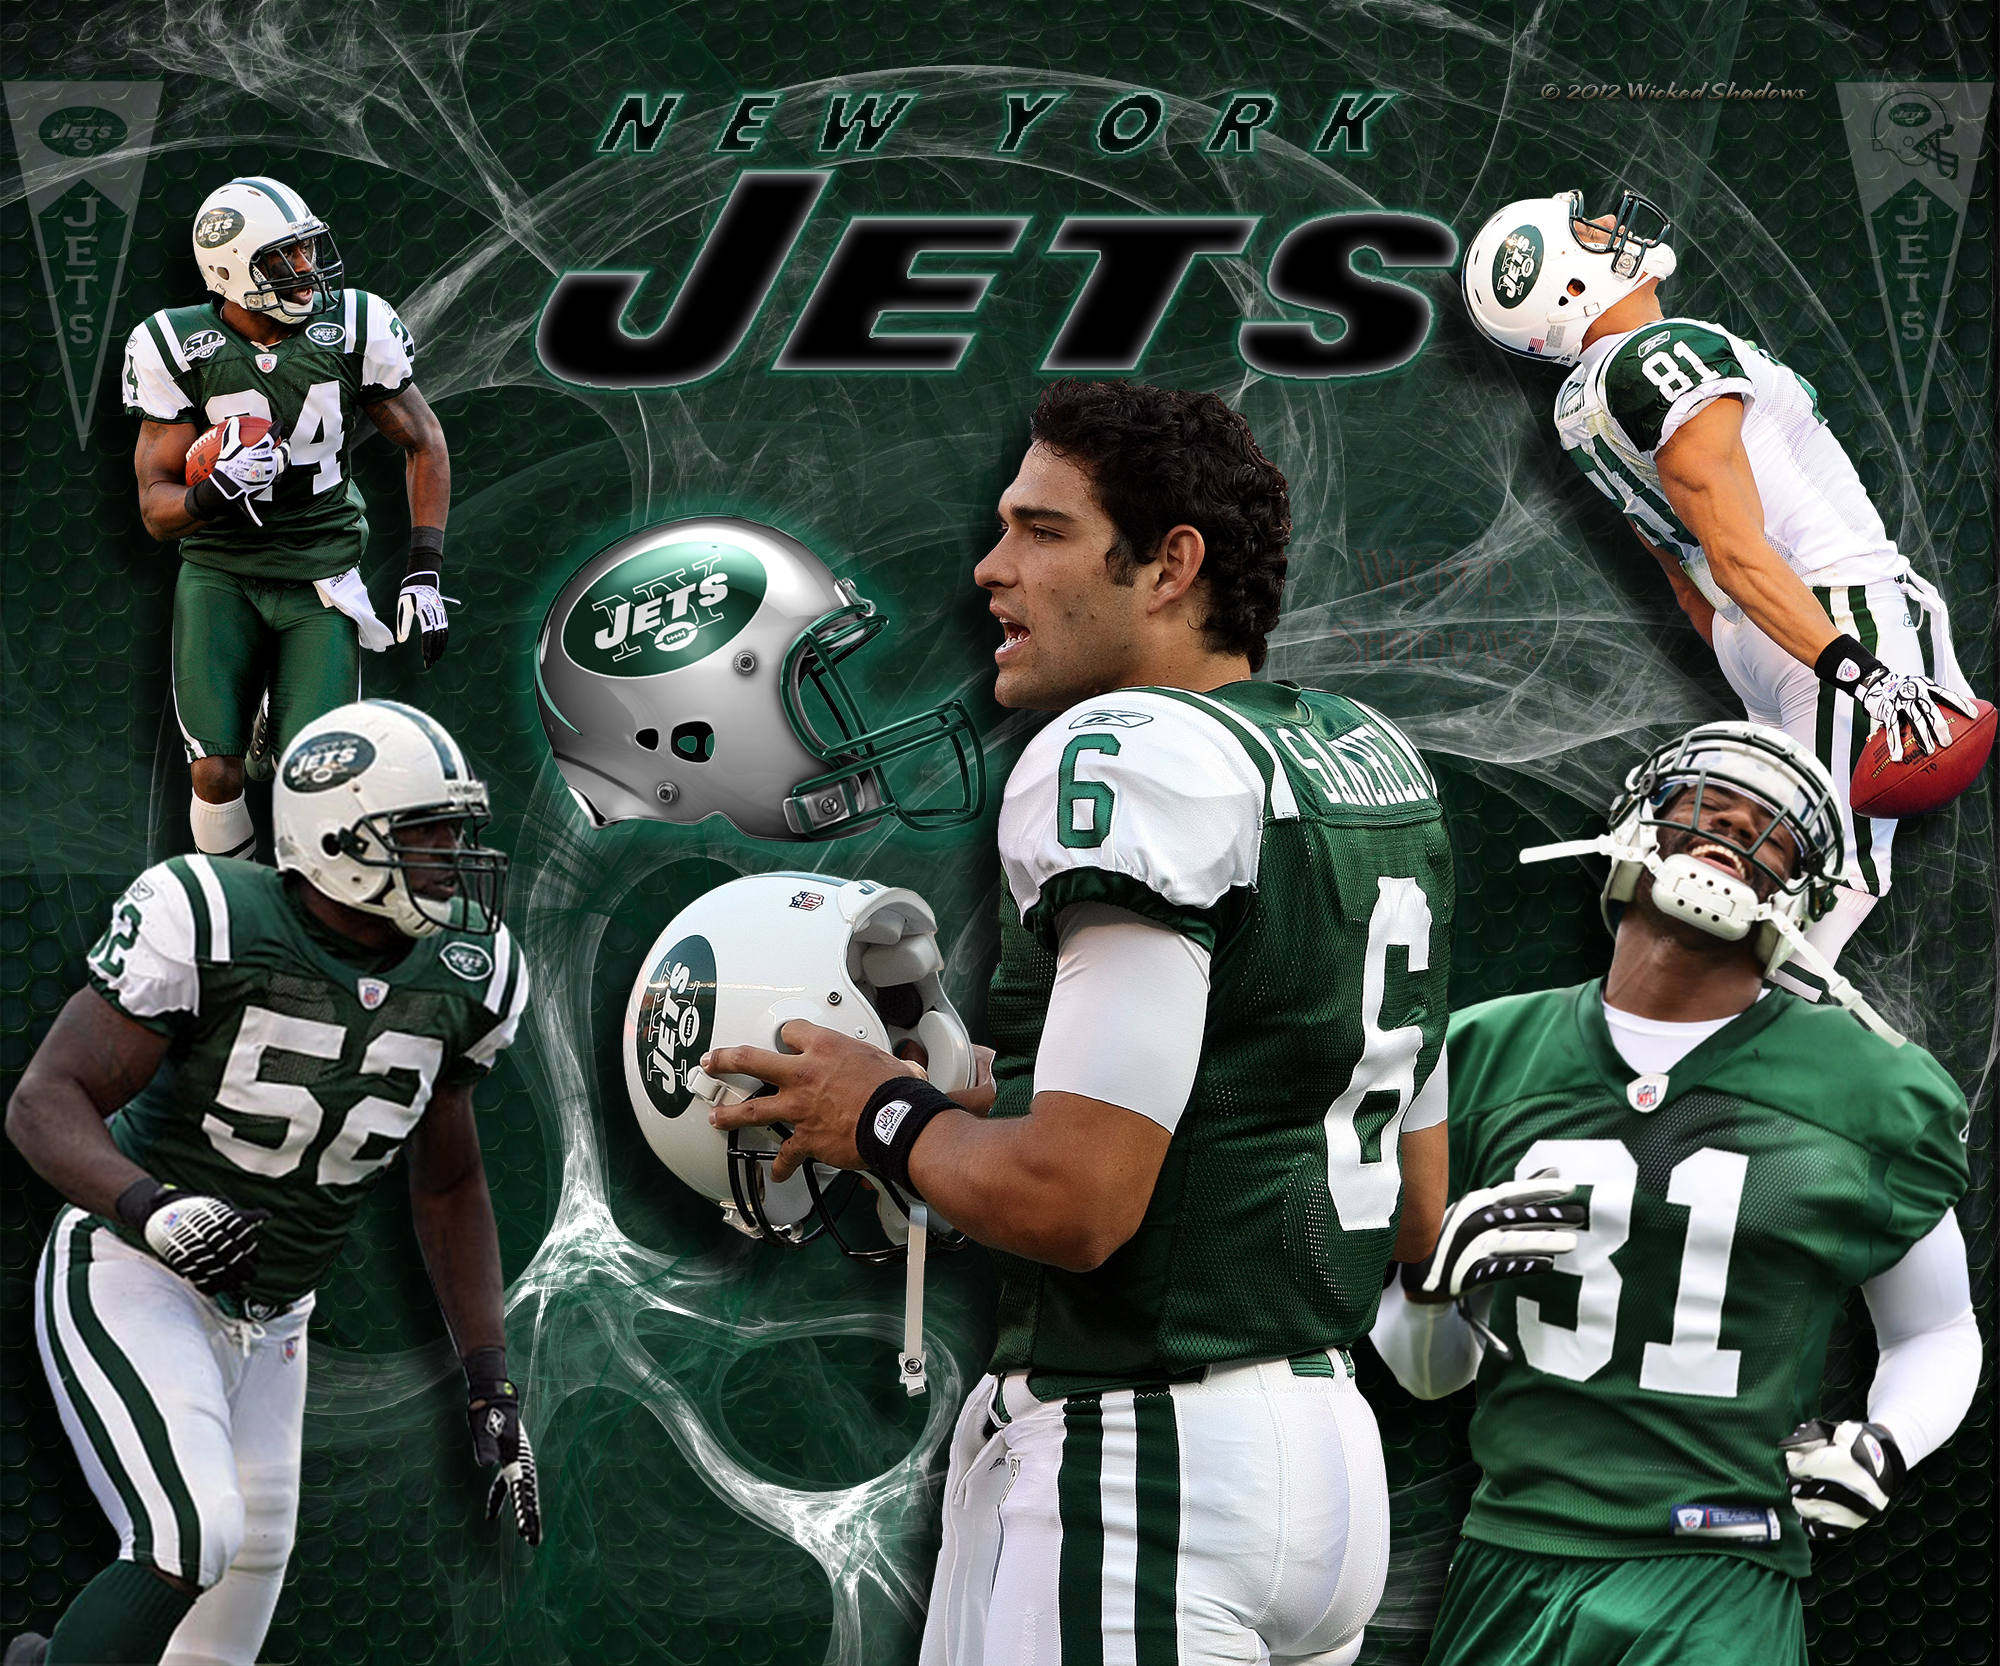 Wallpapers By Wicked Shadows New York Jets Team Wallpaper